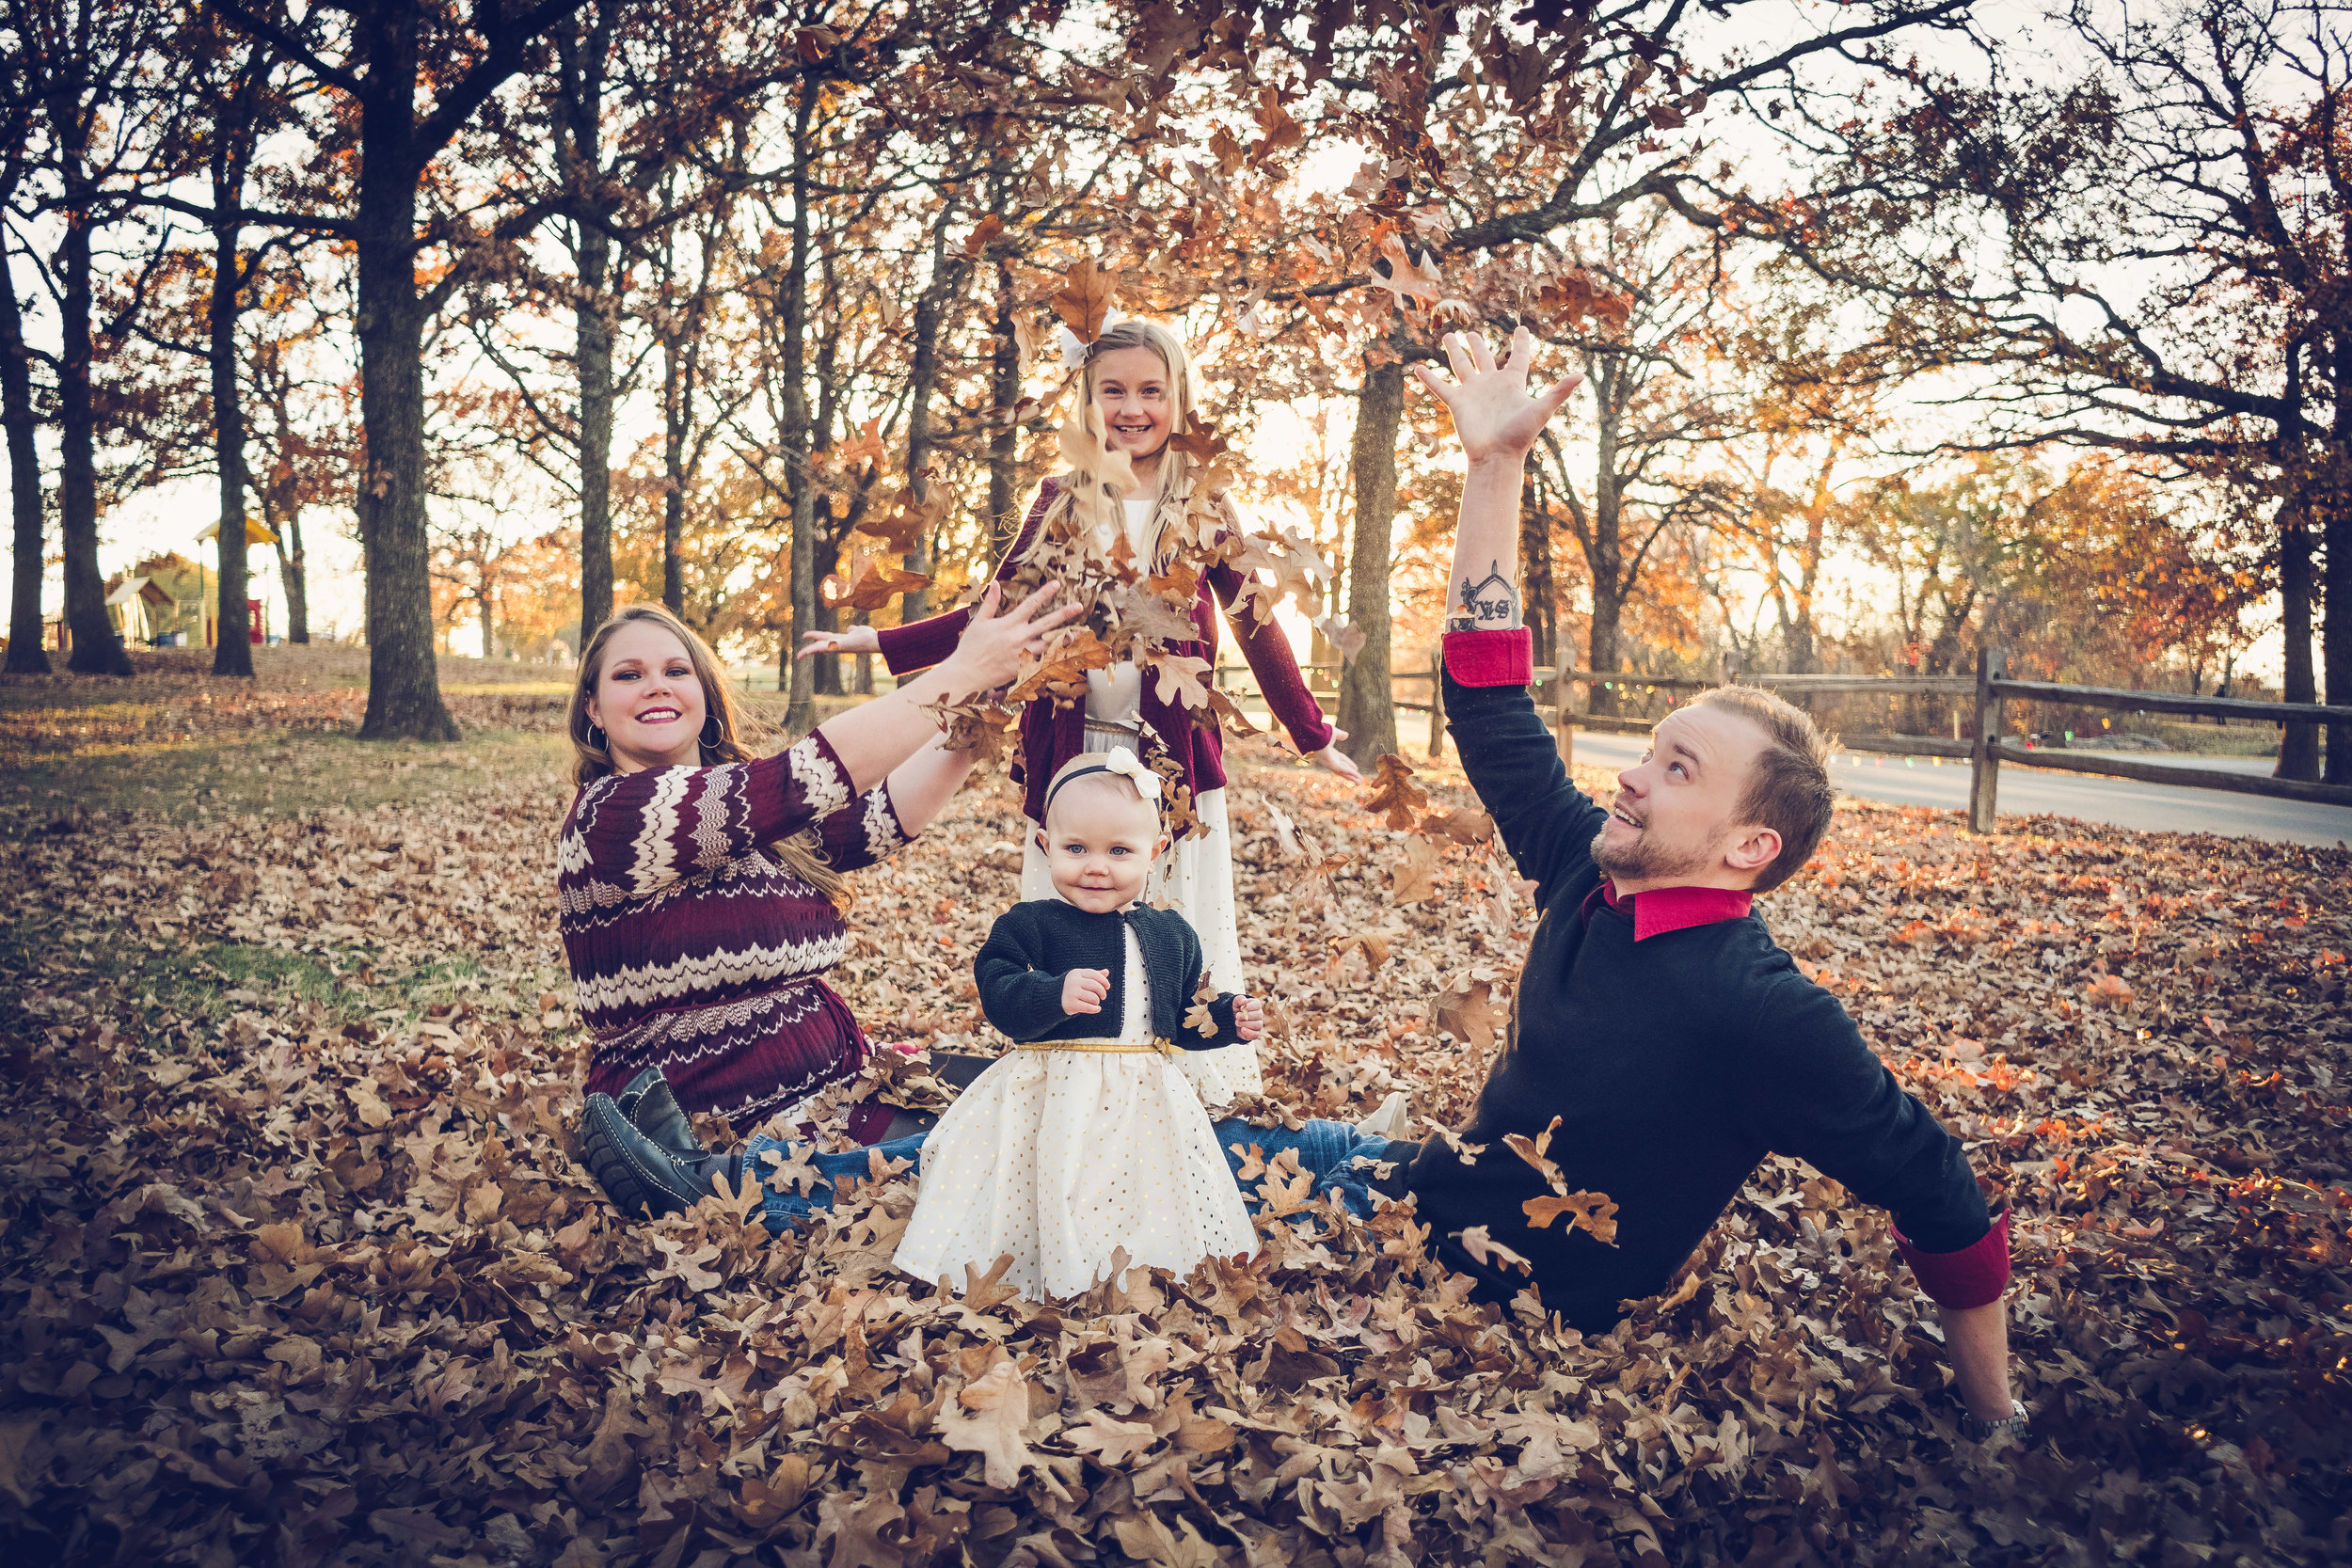 Herms Family Christmas Photo Shoot - Bound For Glory Productions-1.jpg